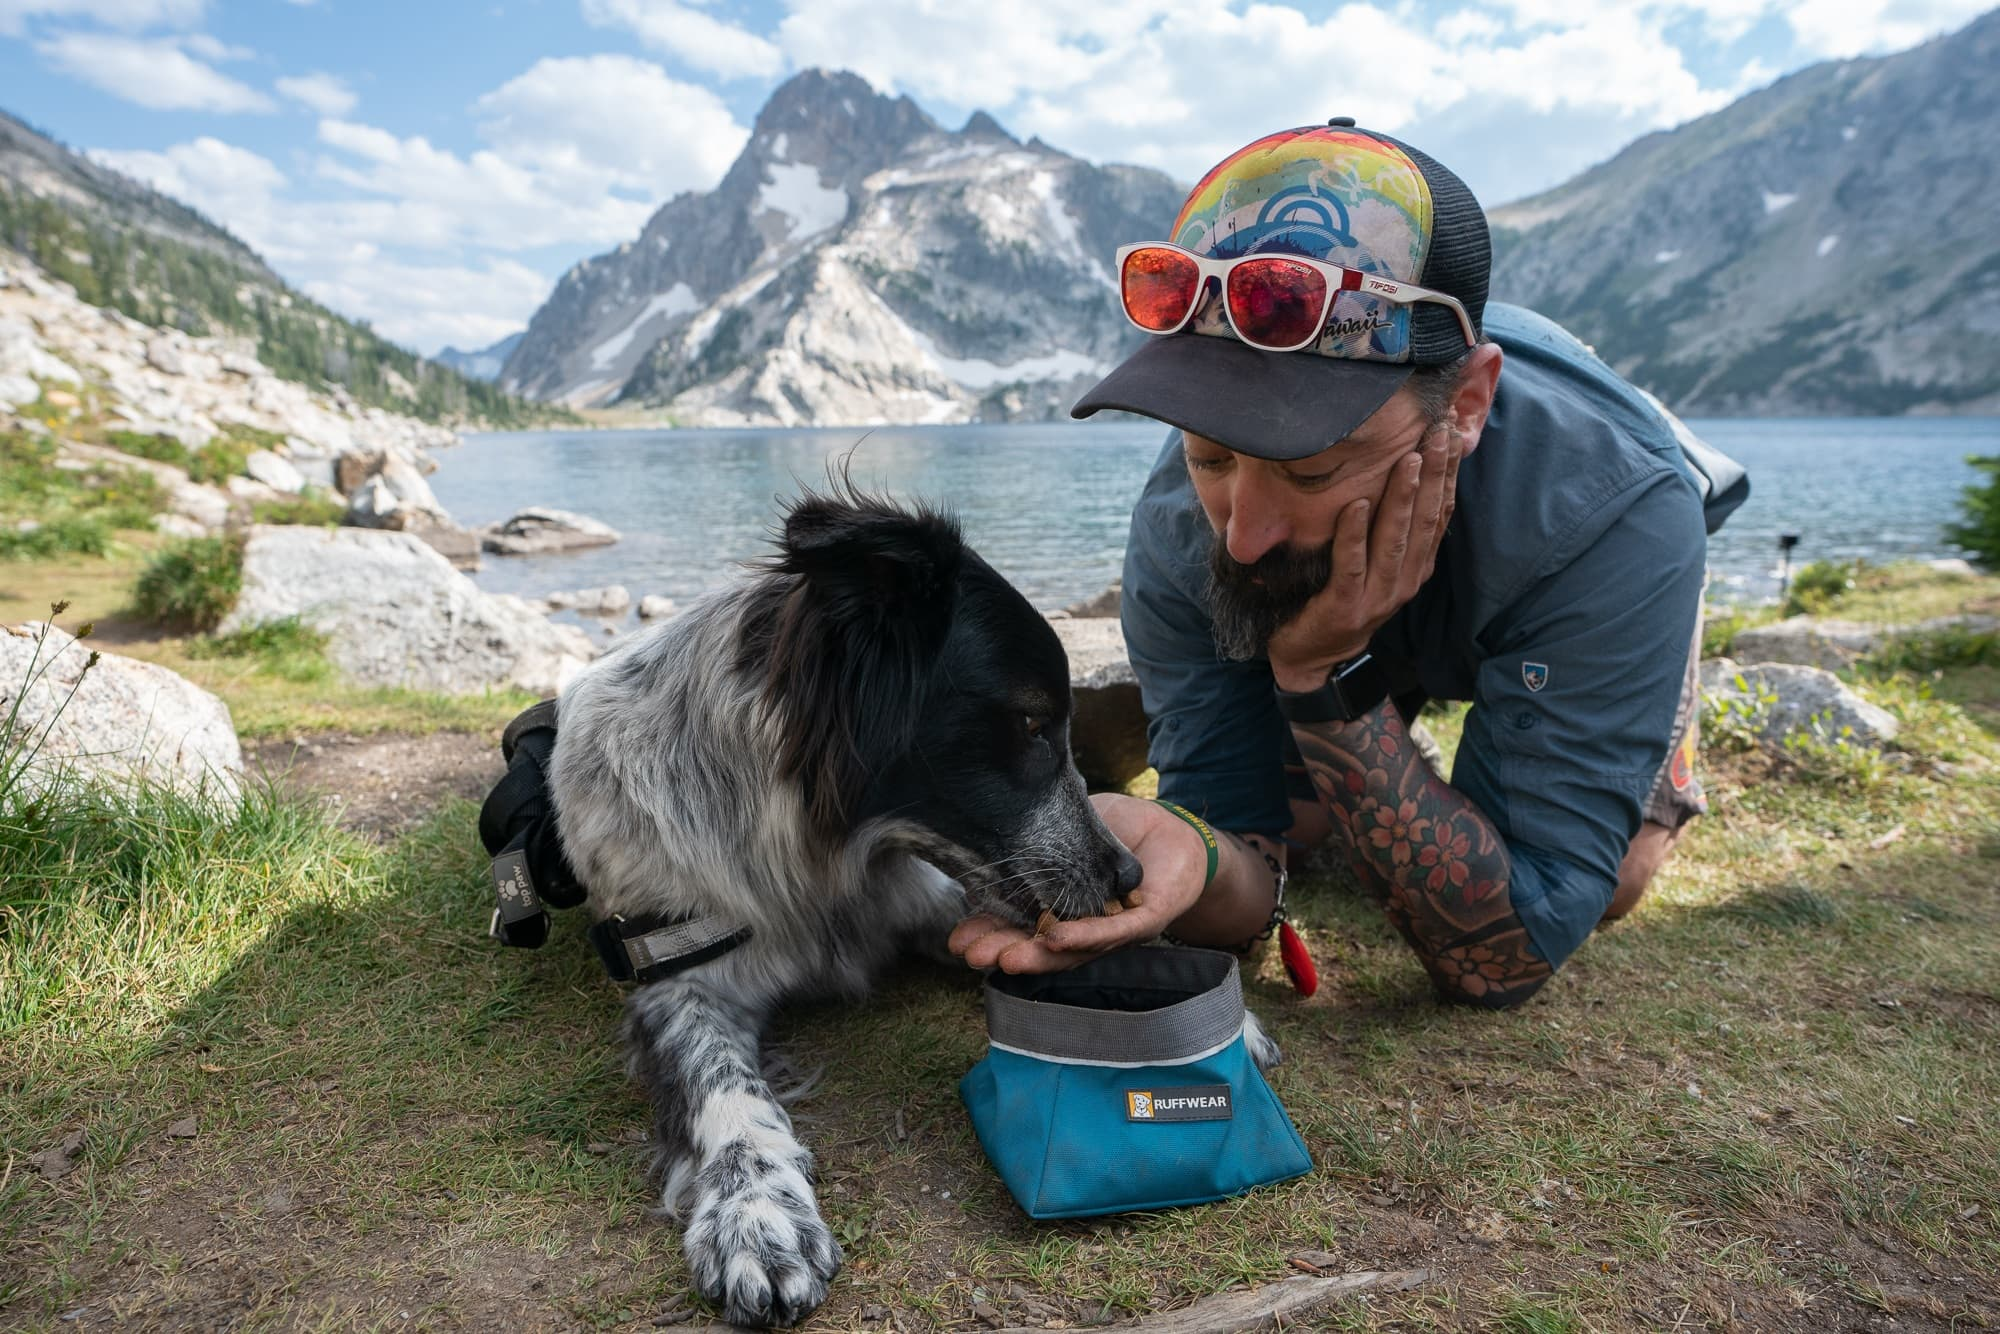 Ruffwear collapsible dog bowls are great for hiking and camping